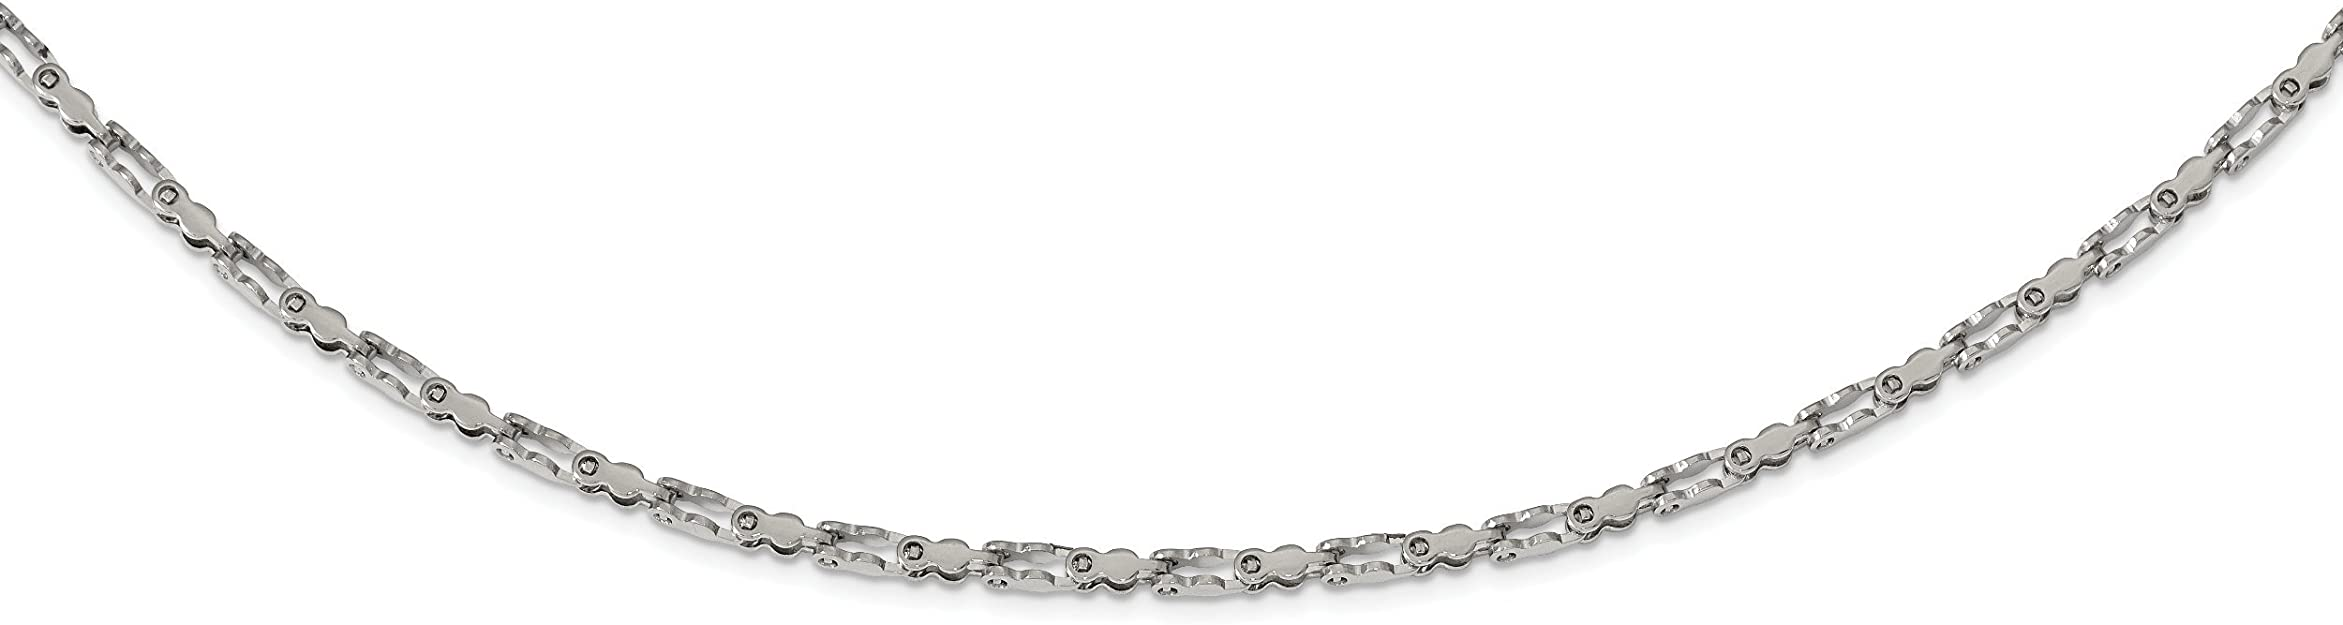 Kira Riley Stainless Steel Polished Fancy Link 18in Chain